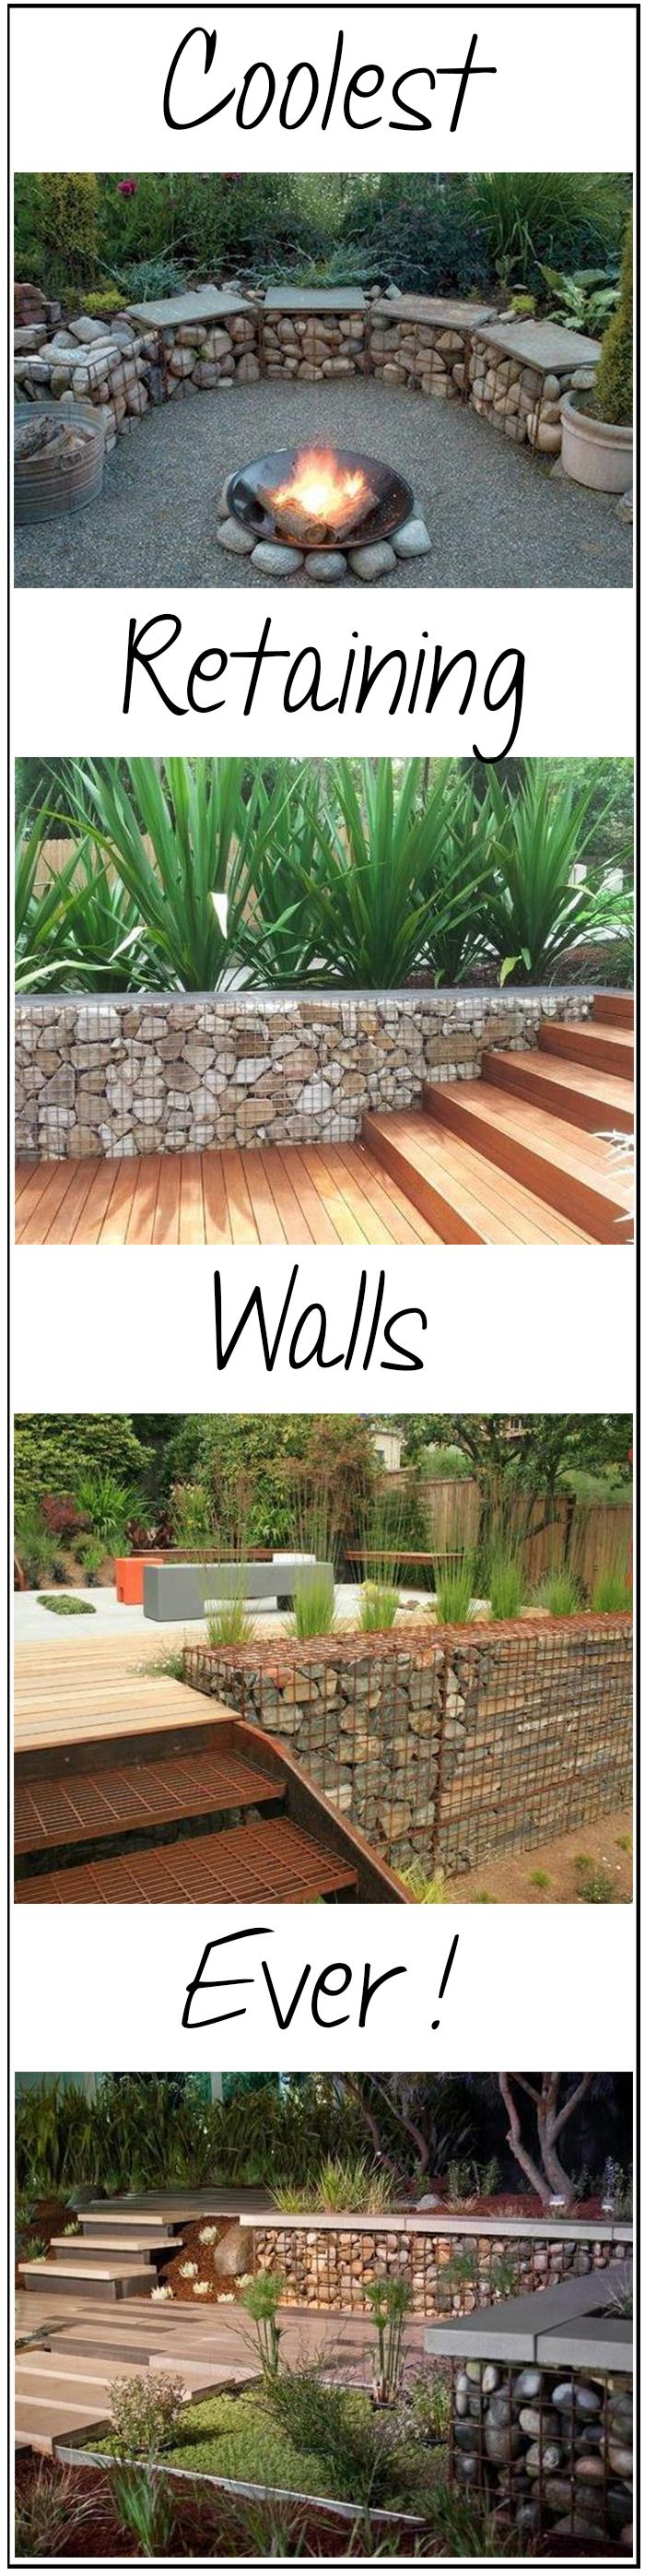 24 awesome diy retaining wall projects coolest retaining walls ever pin solutioingenieria Gallery